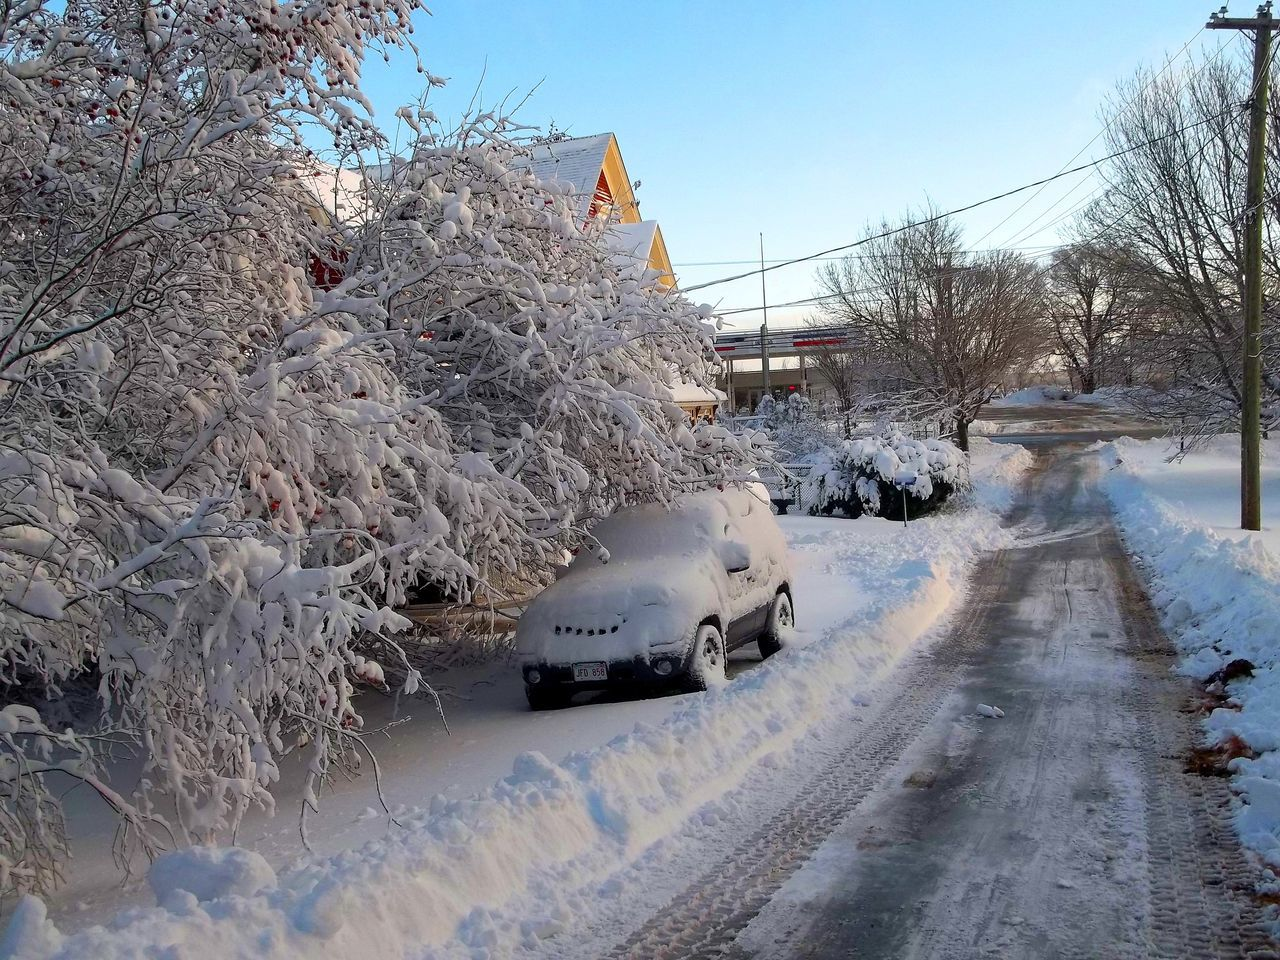 Scene from an East Coast village after a big snow storm. After The Storm Bare Tree Beauty In Nature Cold Temperature Day Nature No People Outdoors Picturesque Village Sky Snow Snow Covered Snow Covered Streets Snow Covered Trees Snow Day Snow Storm Snowstorm Tree Winter Winter Winter Street Winter Wonderland Winter Wonderland ❄ Wintertime